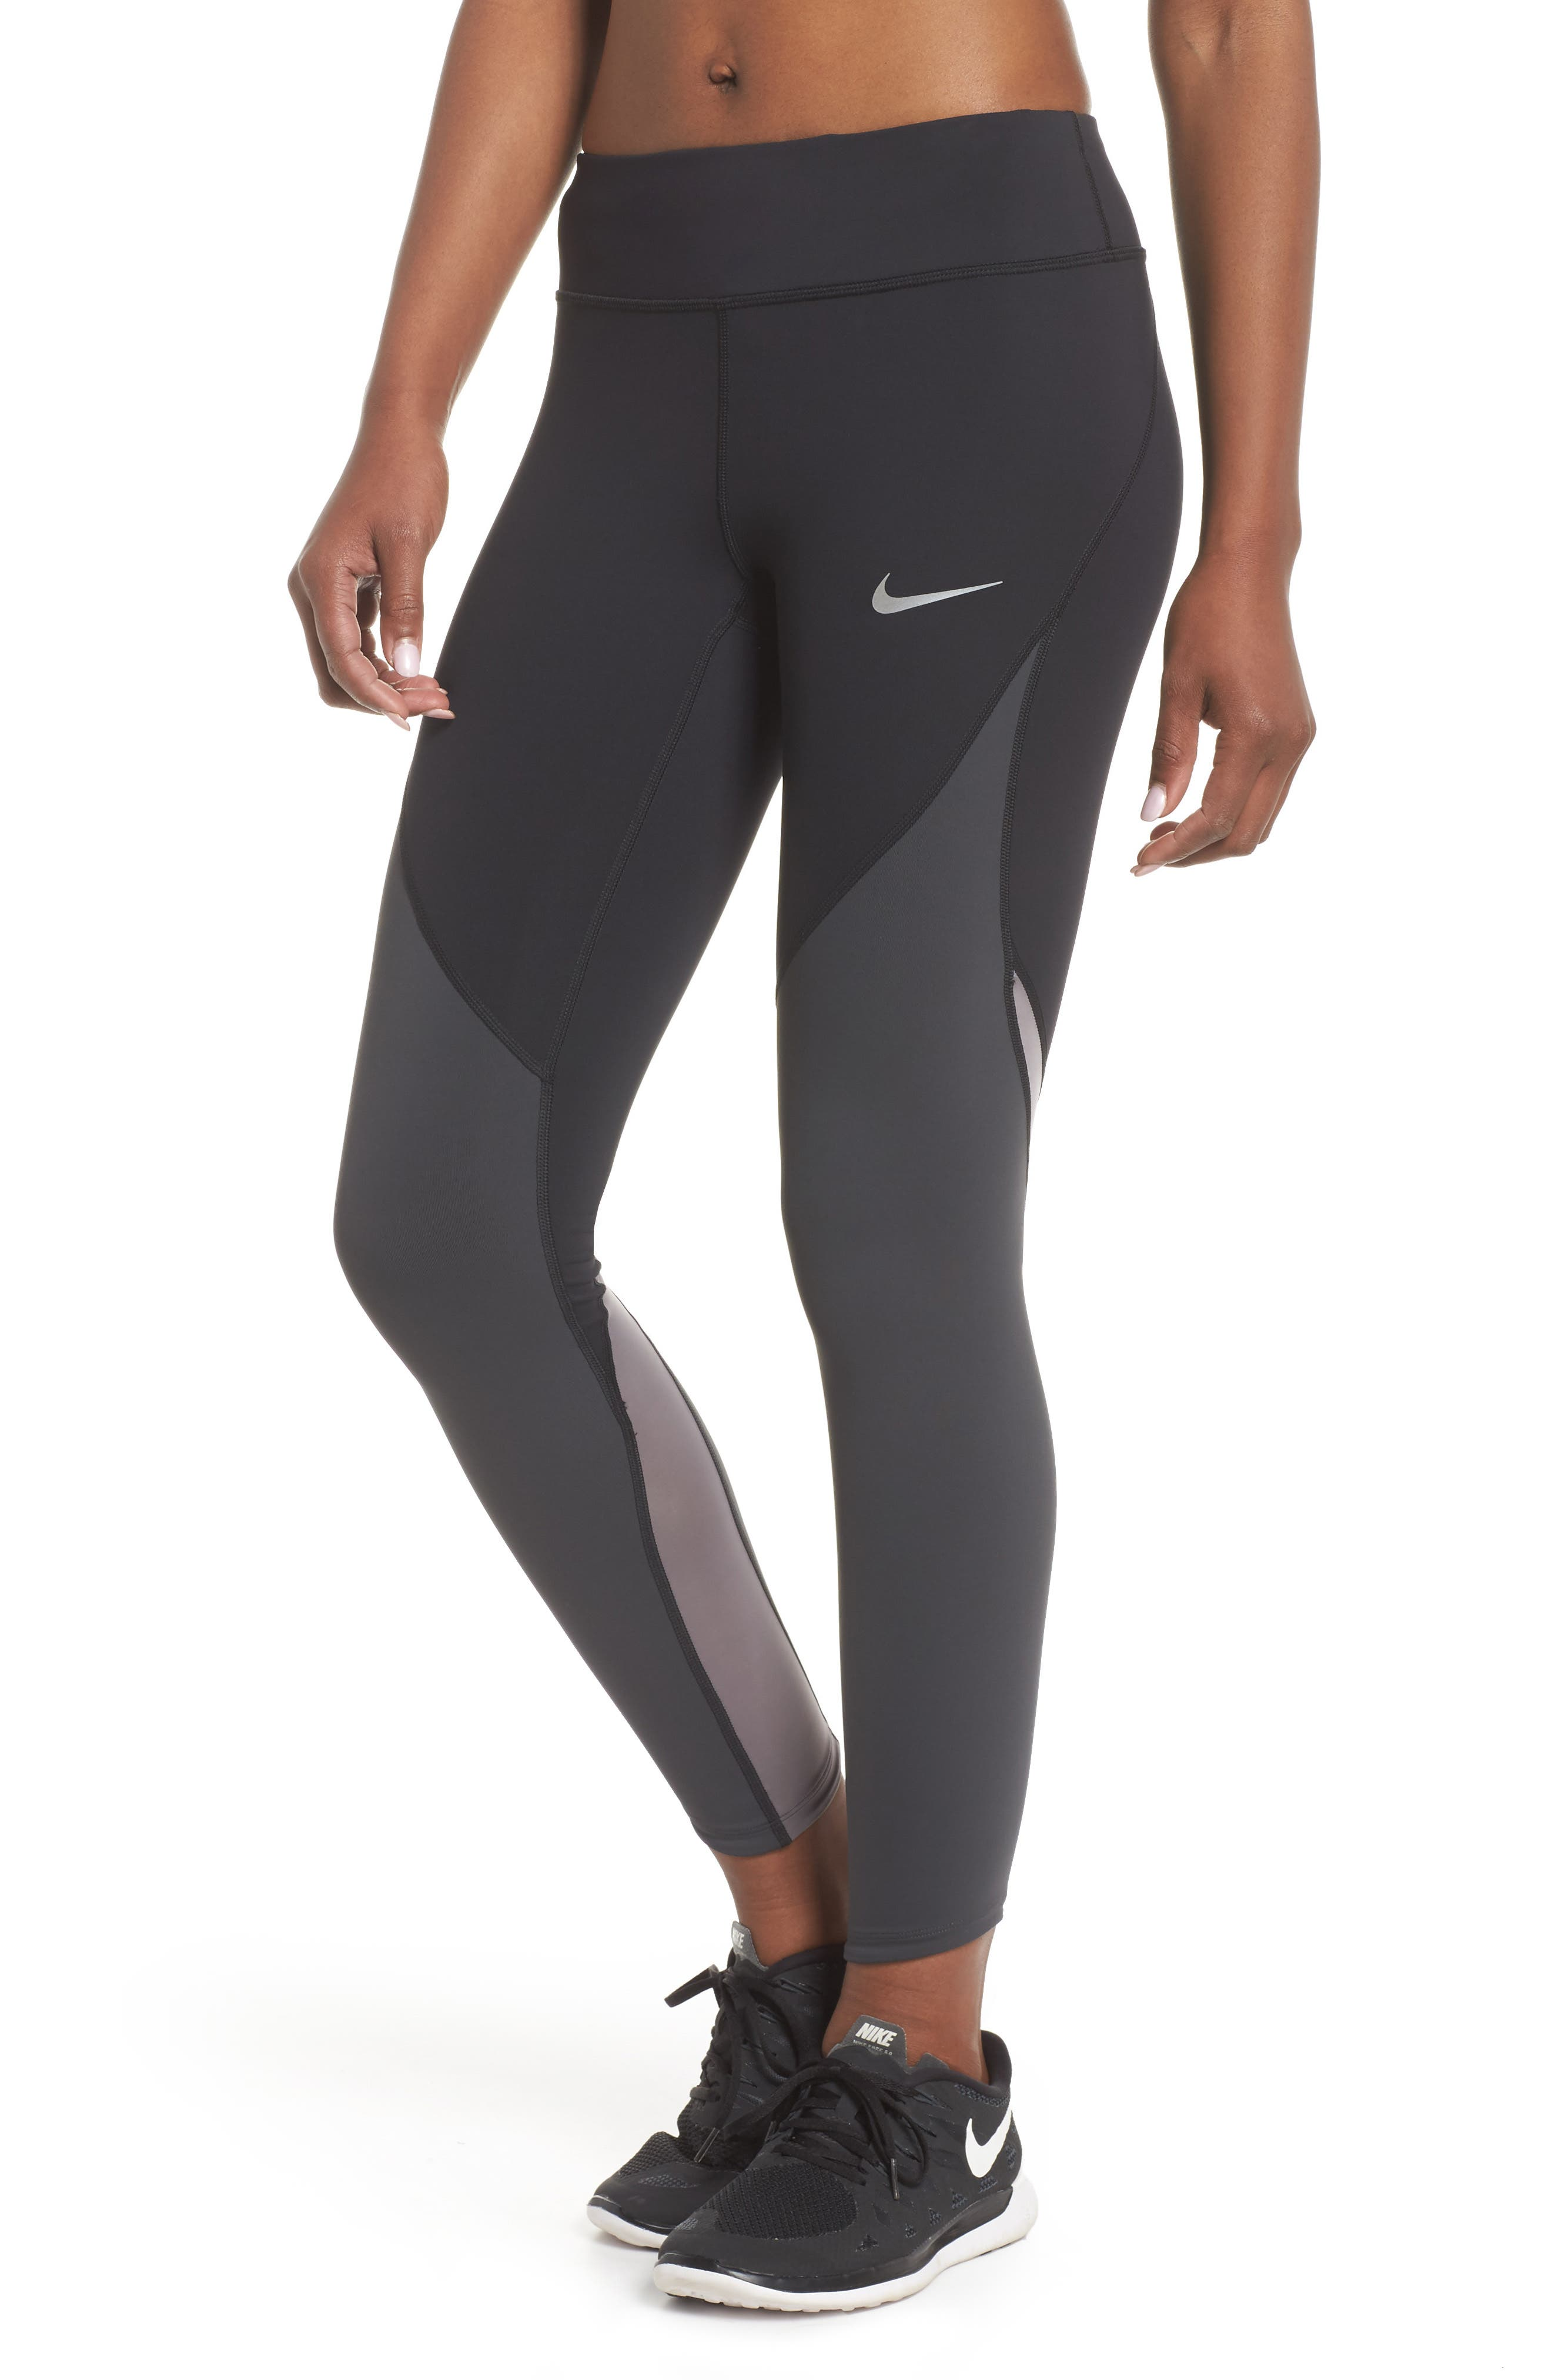 Power Epic Lux Colorblock Running Tights,                             Main thumbnail 1, color,                             Black/ Anthracite/ White